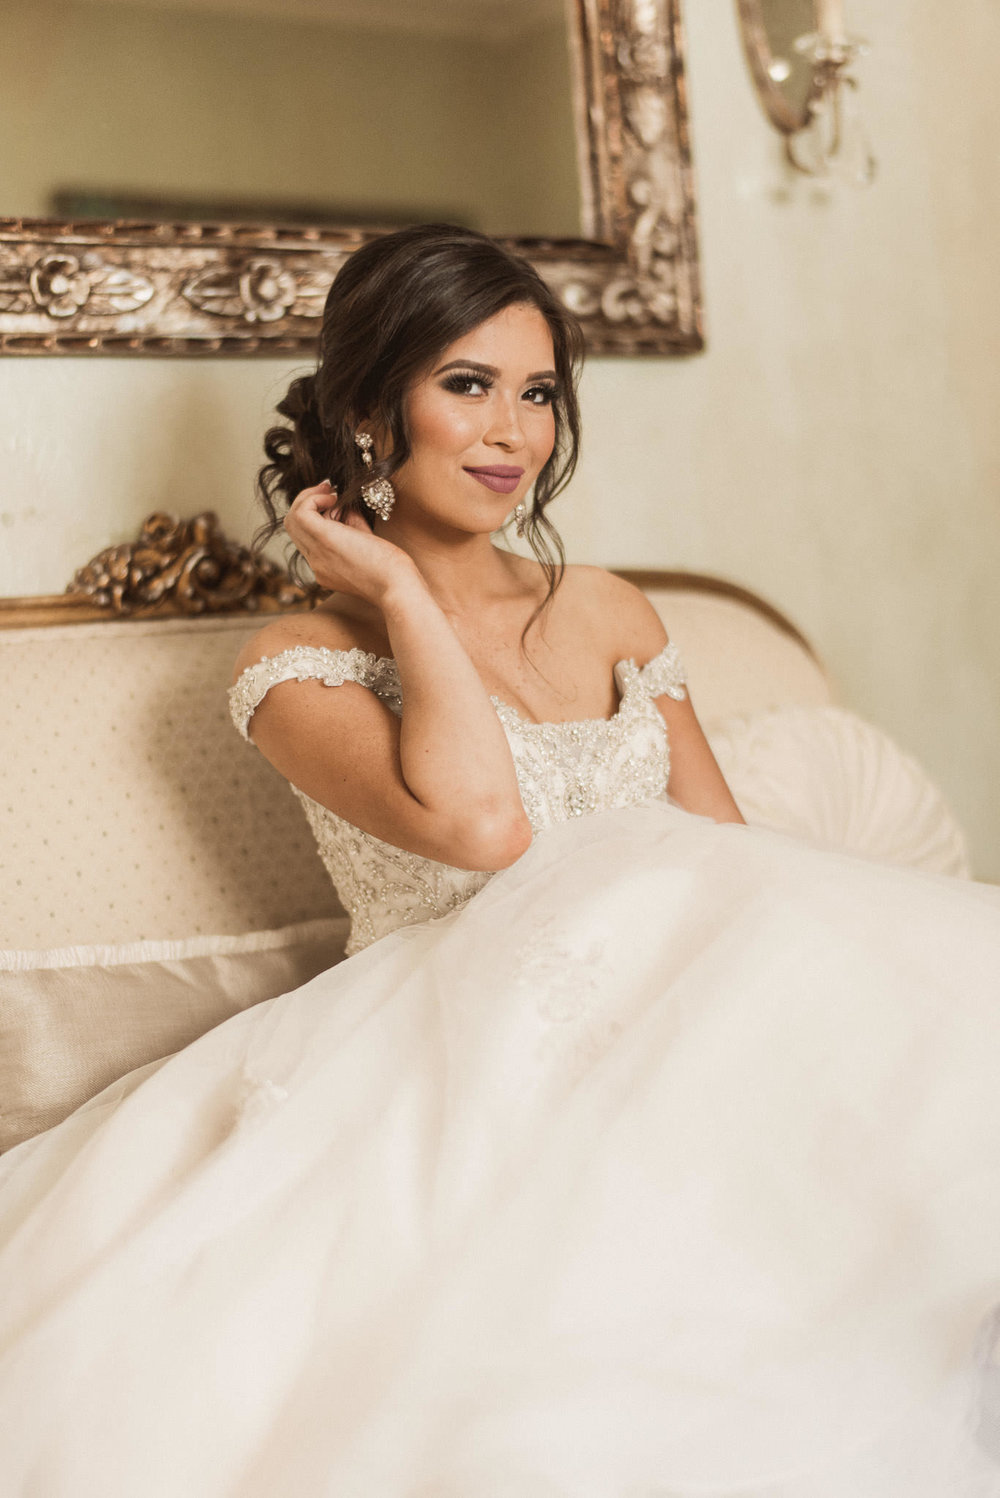 adriana-christian-wedding-re-sm-37.jpg